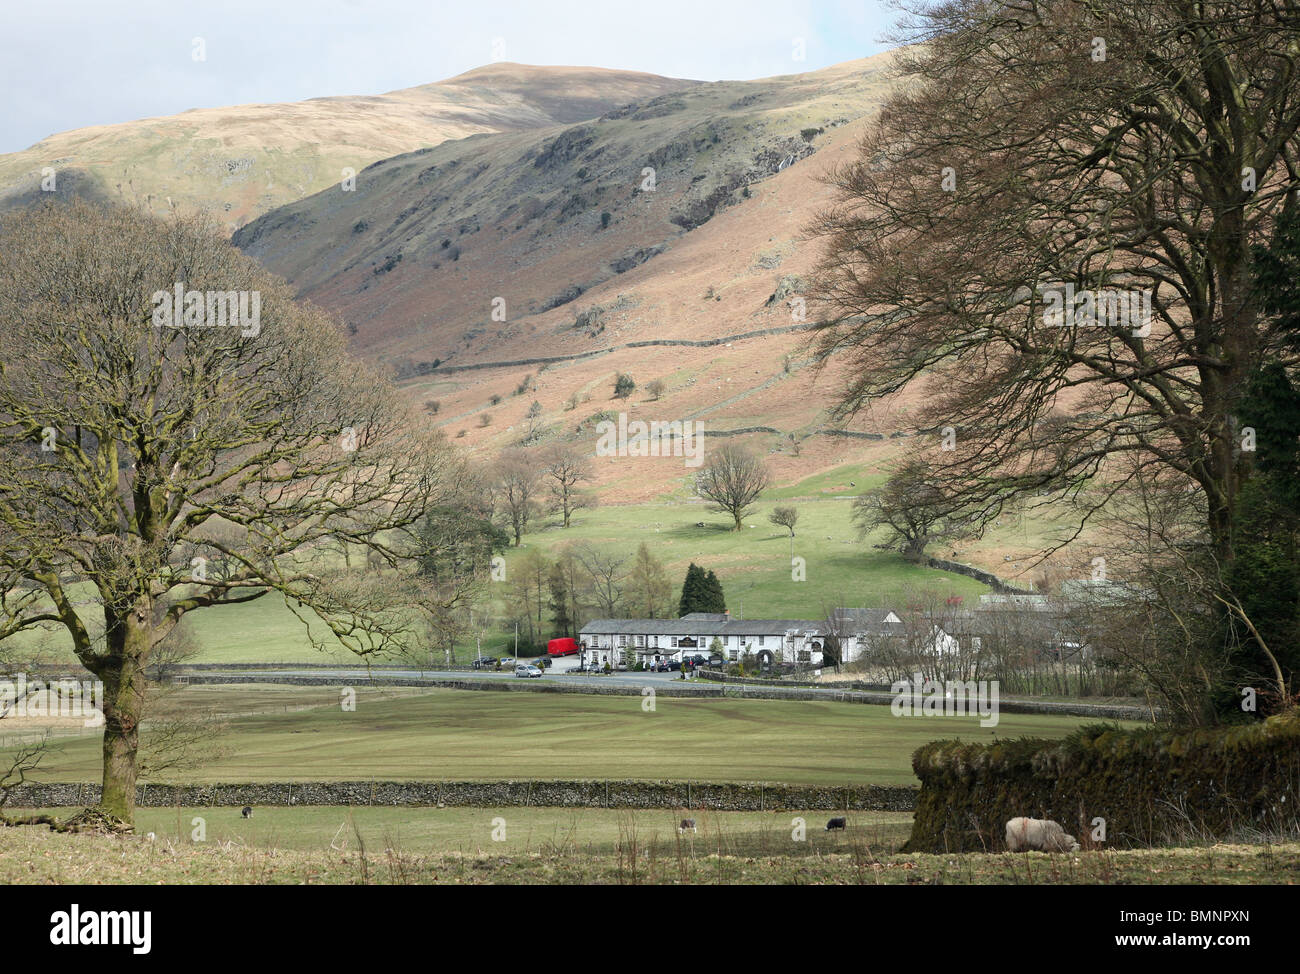 The Kings Head Hotel, Thirlspot, Cumbria the English Lake District, England, UK - Stock Image